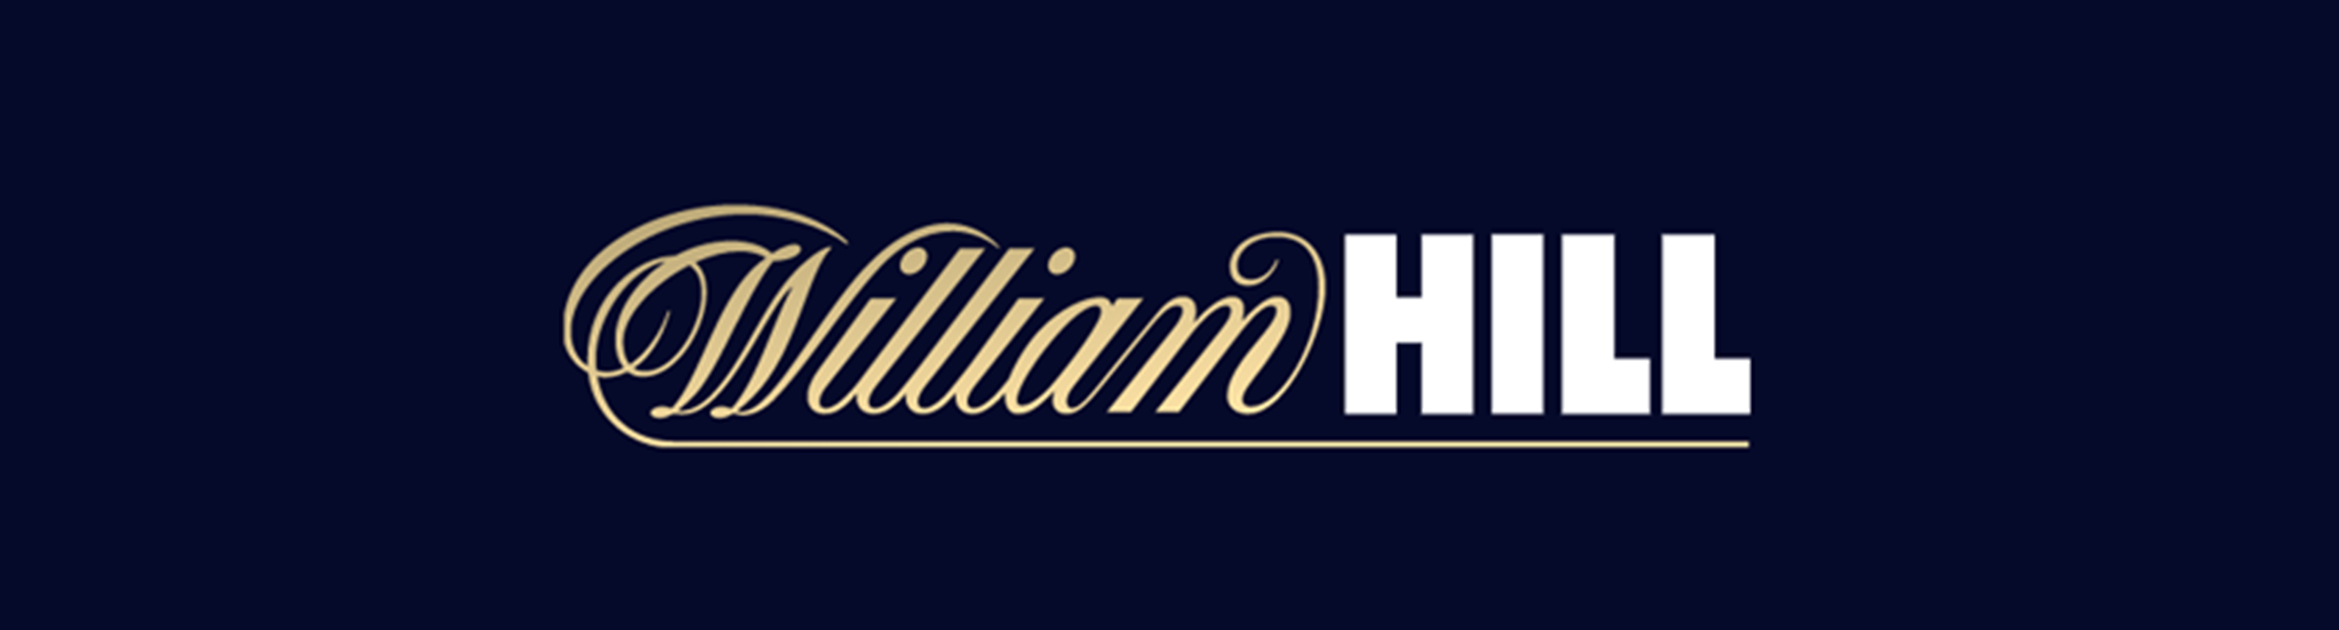 william hill r